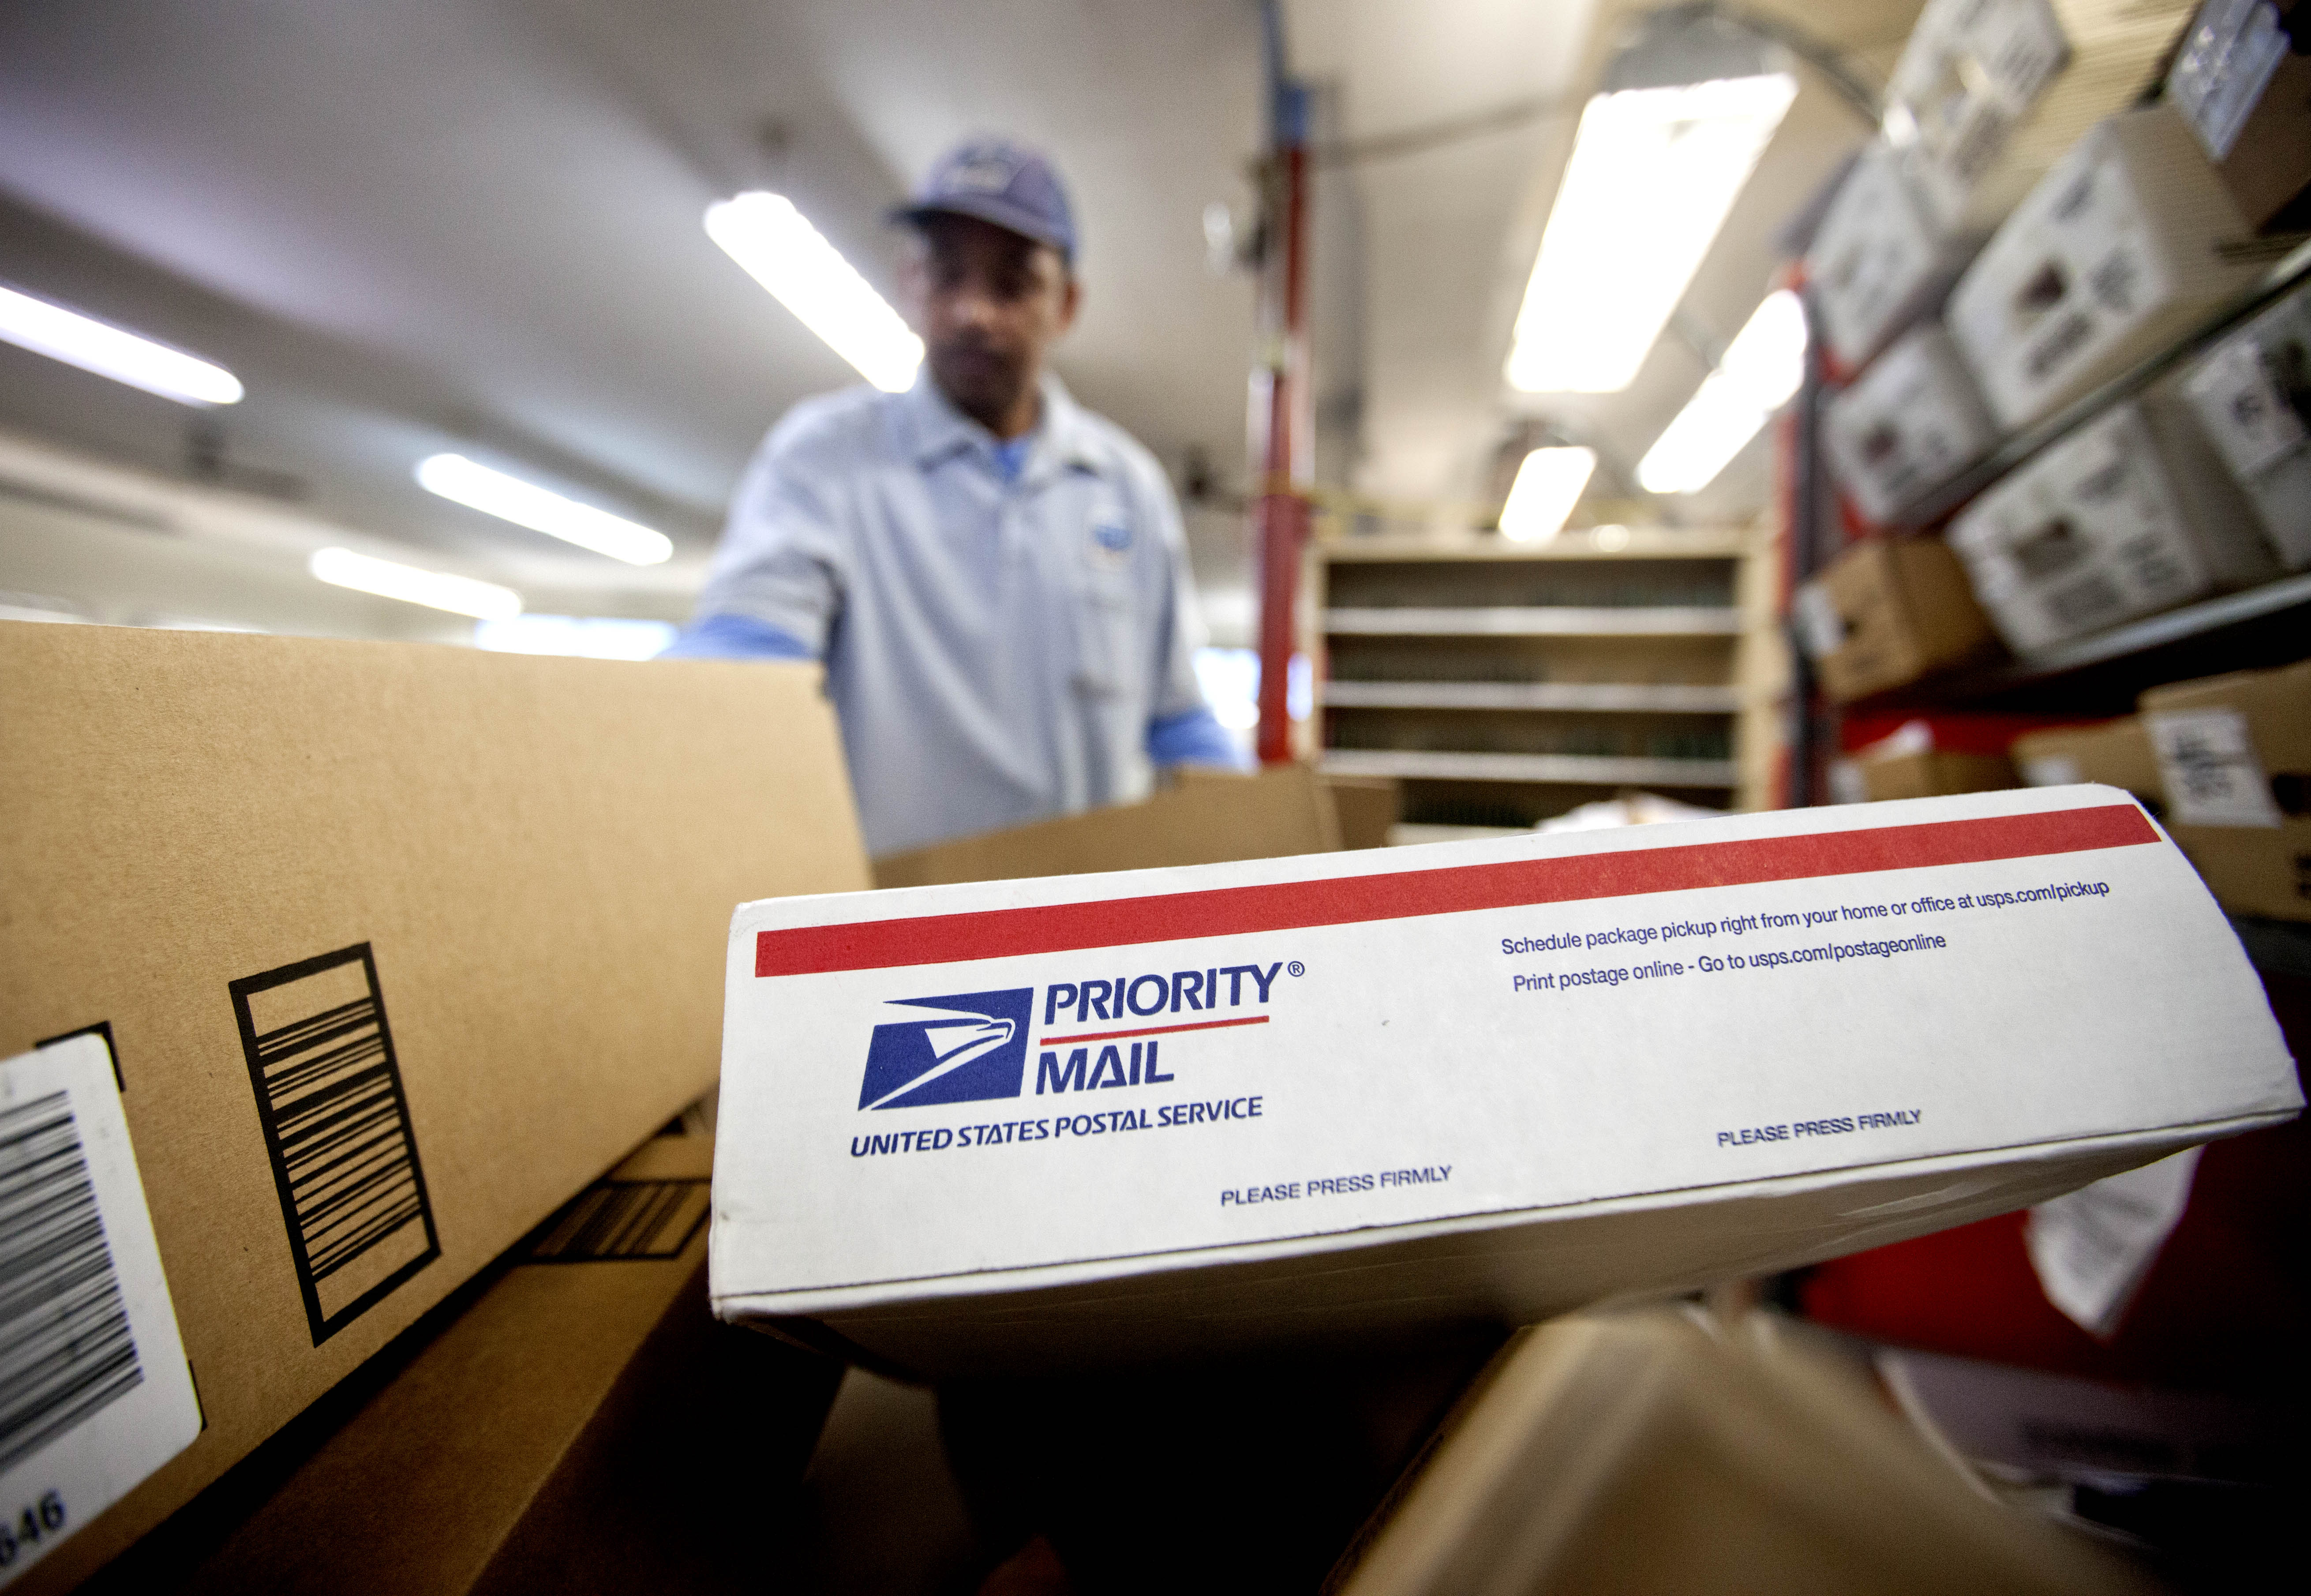 Packages wait to be sorted as a postal worker gathers mail to load into his truck before making a delivery run. The U.S. Postal Service recently announced that it will deliver packages seven days a week through Christmas Day.